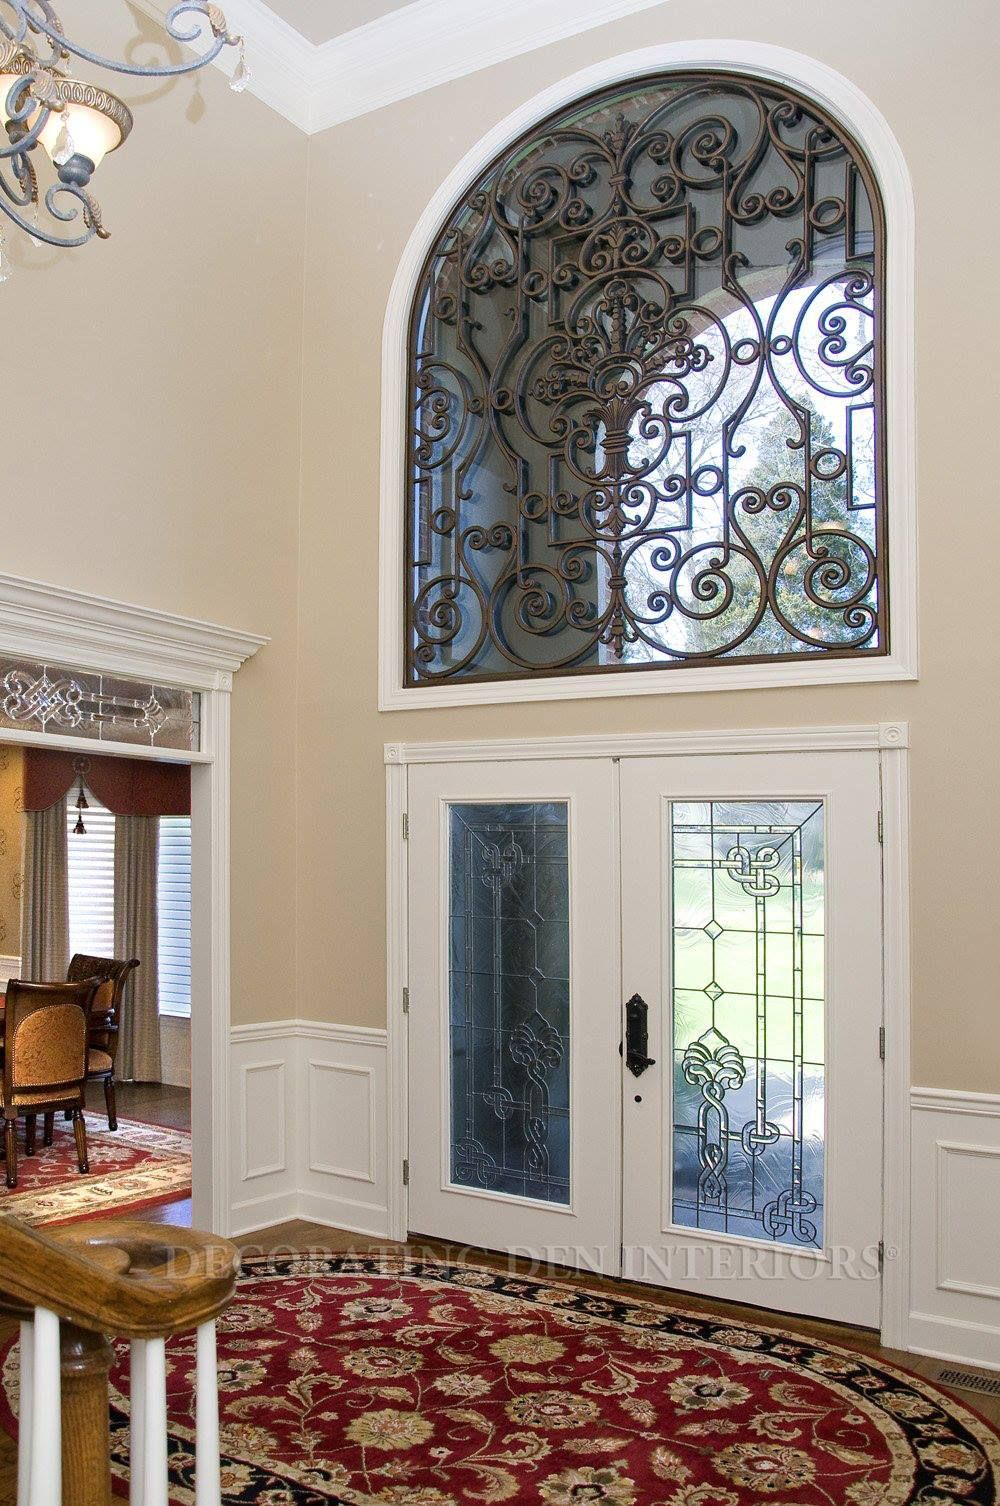 Window coverings arched windows  do you have arched windows in your home we sell amazing faux iron